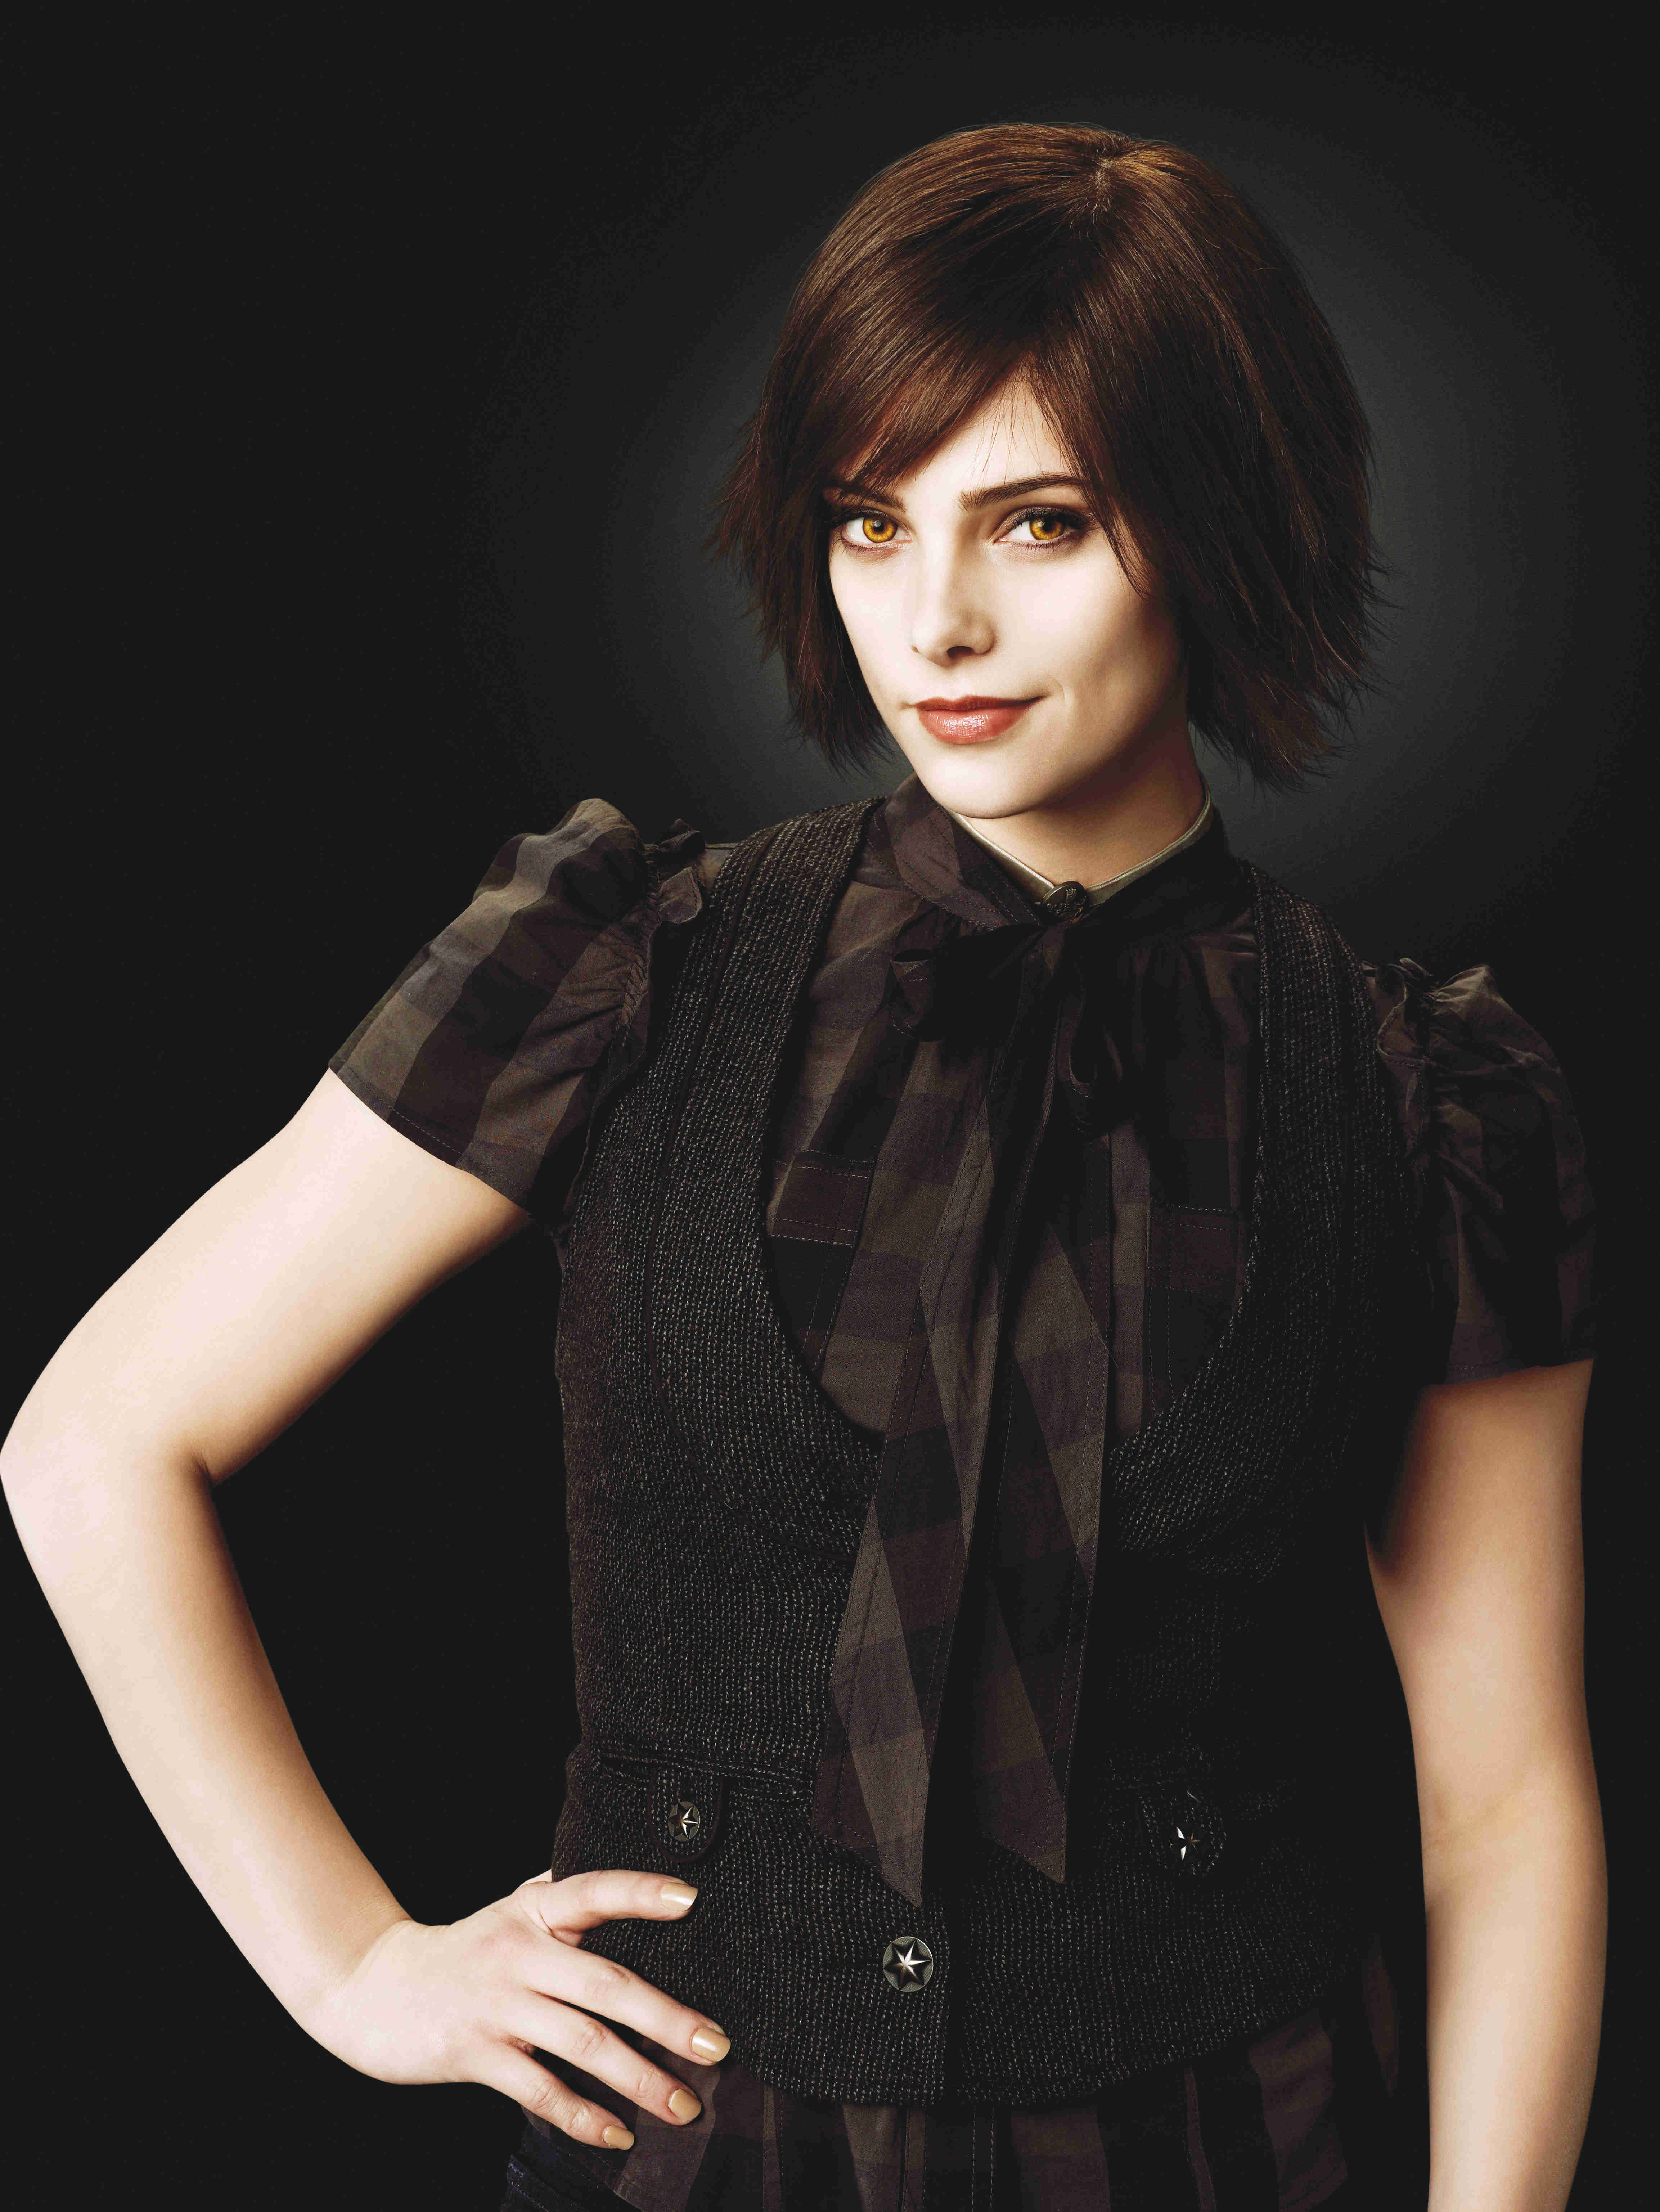 greene Alice cullen Celebrity HD Wallpaper